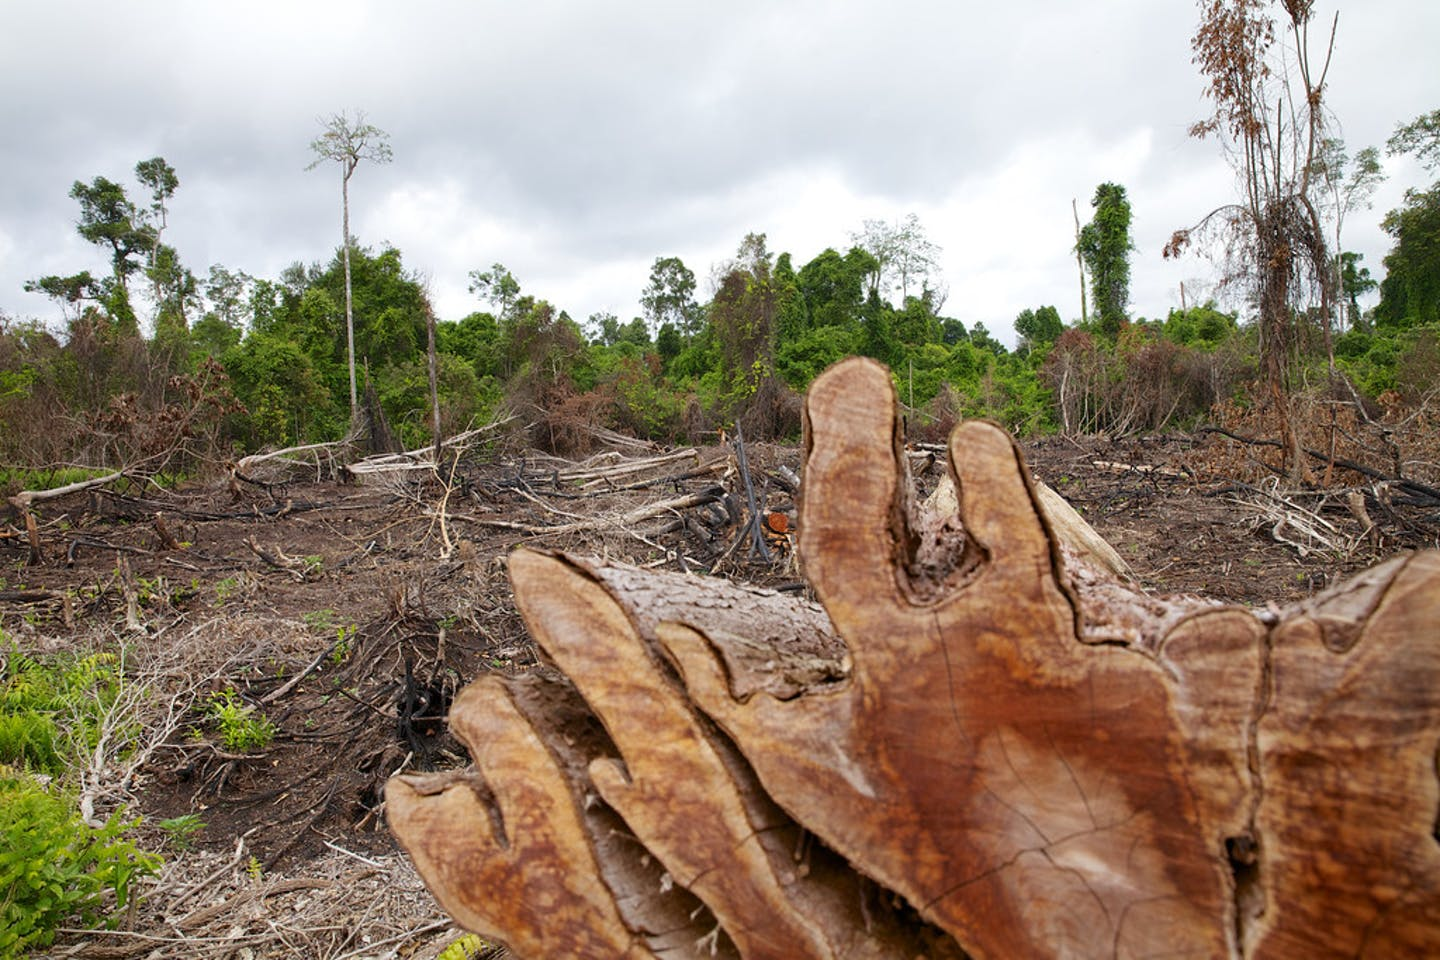 Cleared land in Central Kalimantan, Indonesia